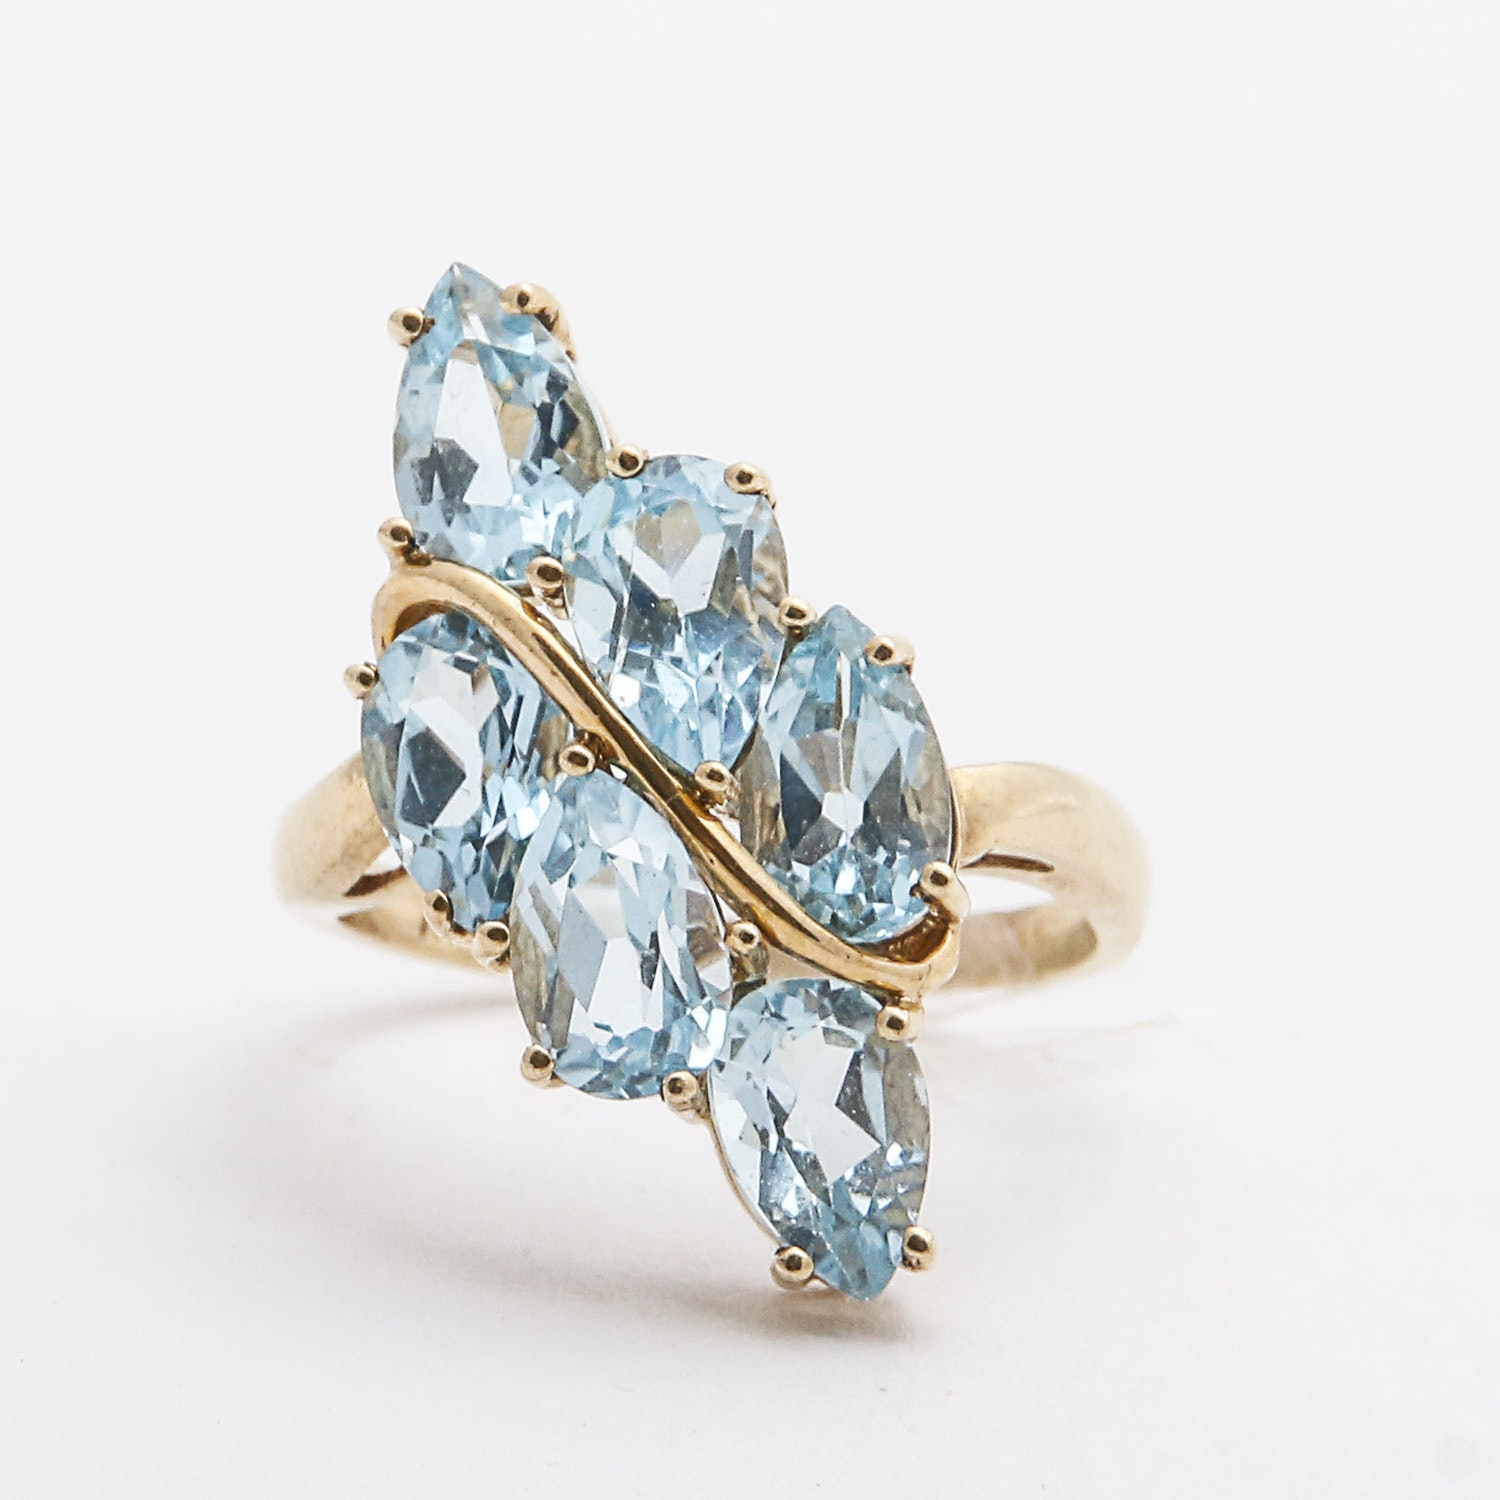 10K Yellow Gold and Blue Topaz Ring